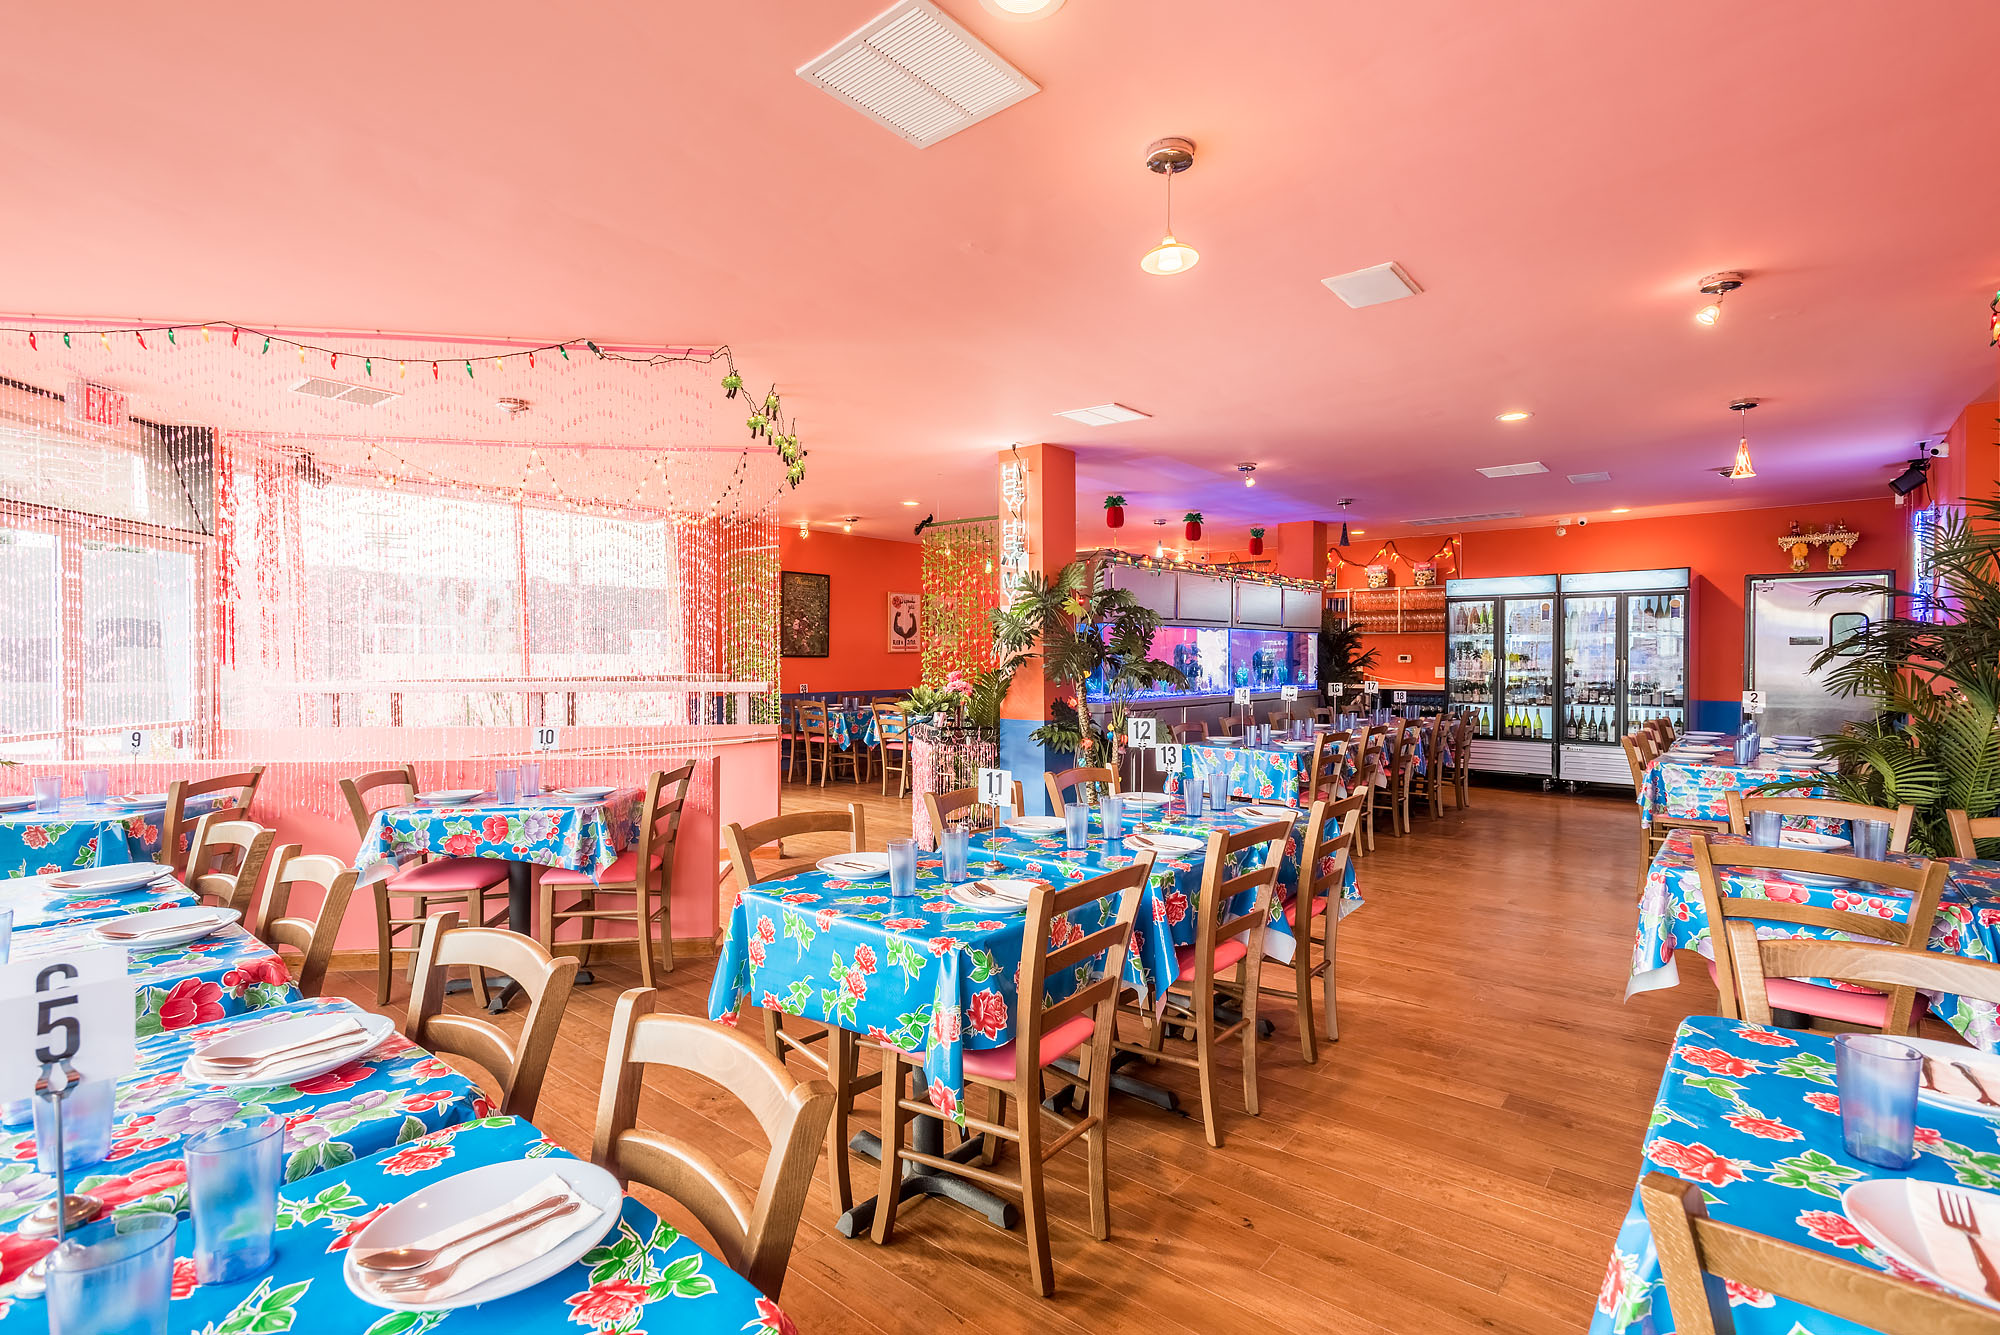 A dining room with tables covered in blue, floral oilcloth tablecloths